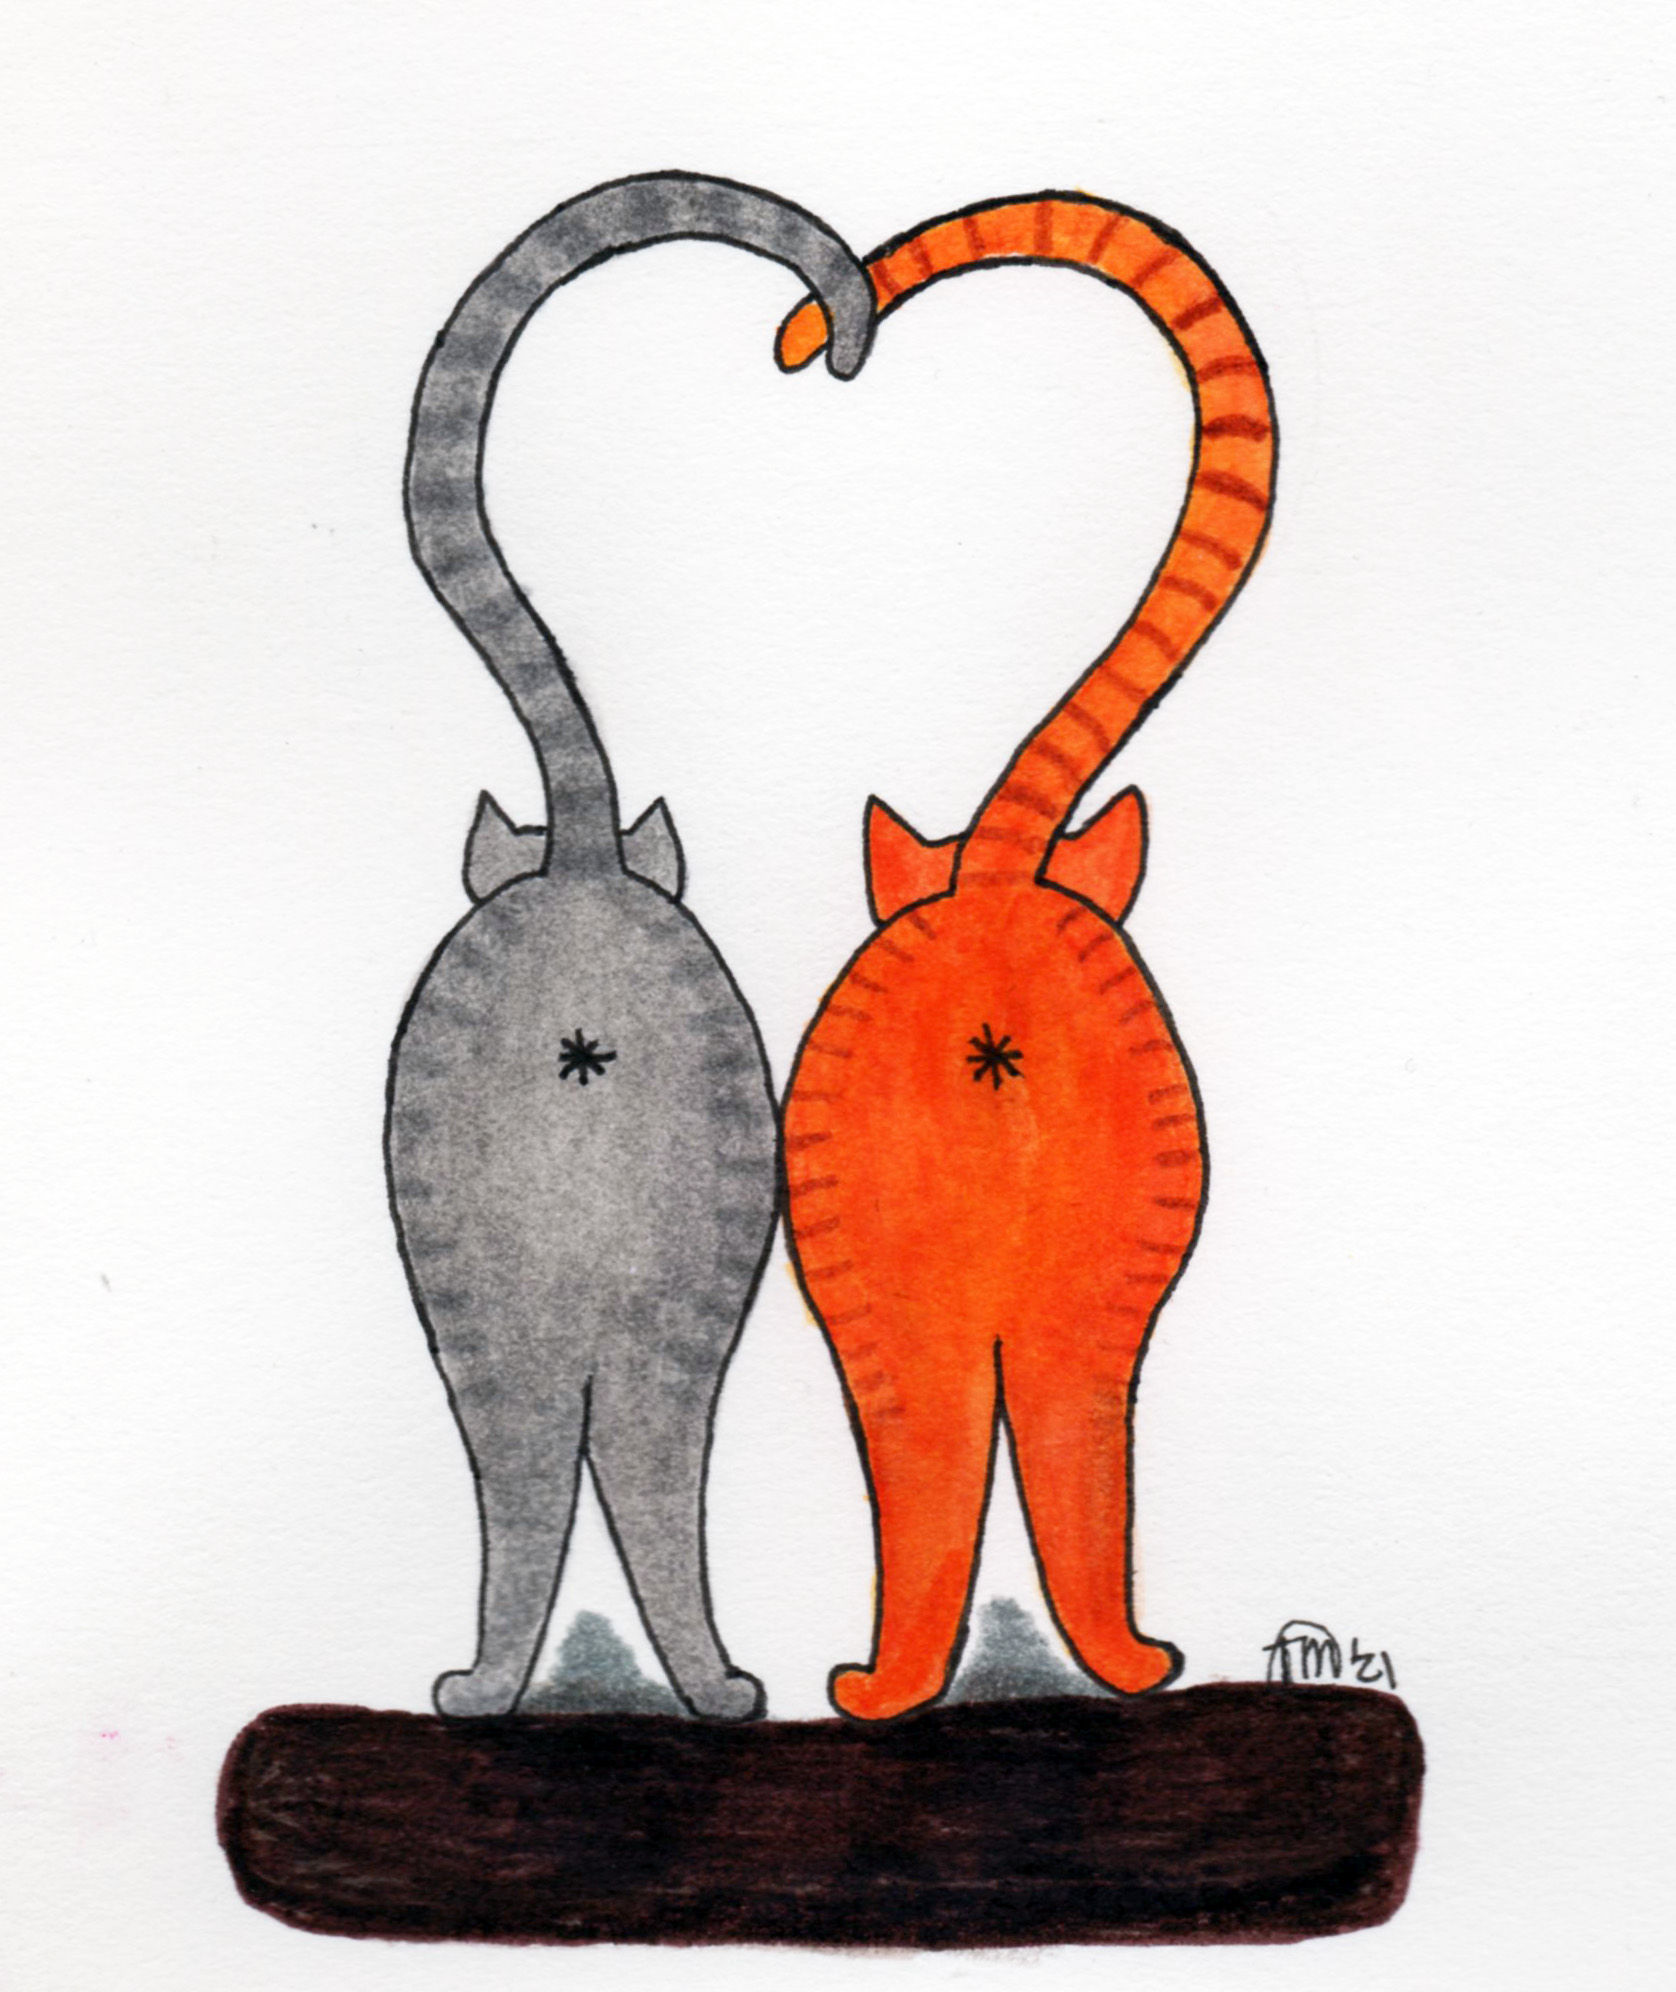 Two tabby cat butts with their tails forming a heart.